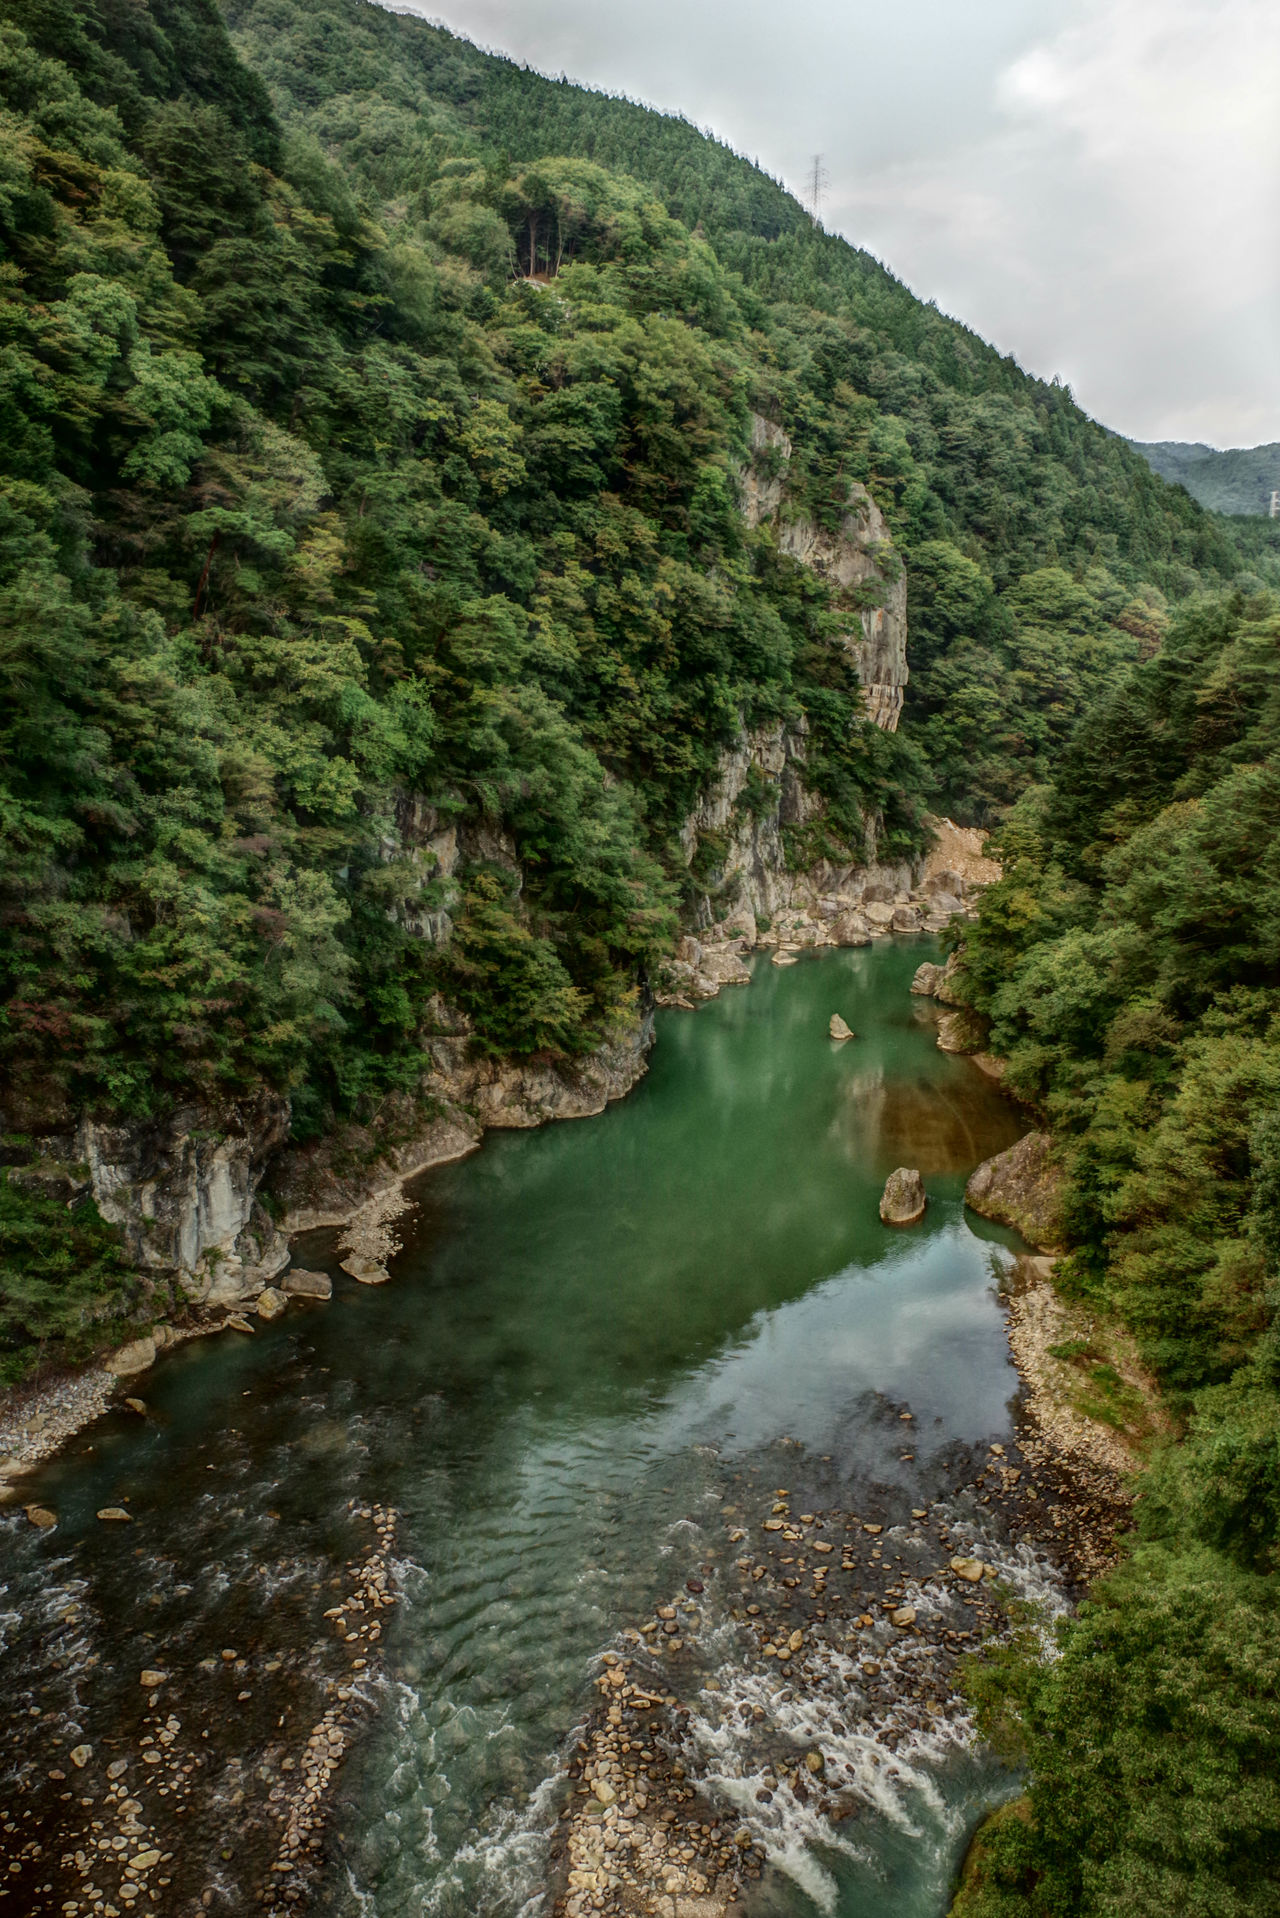 日光 鬼怒楯岩大吊橋 鬼怒川温泉 鬼怒川 HDR Collection HDR Hdr_gallery Nice View Suspension Bridge Green Nature Beautiful Japan Landscape